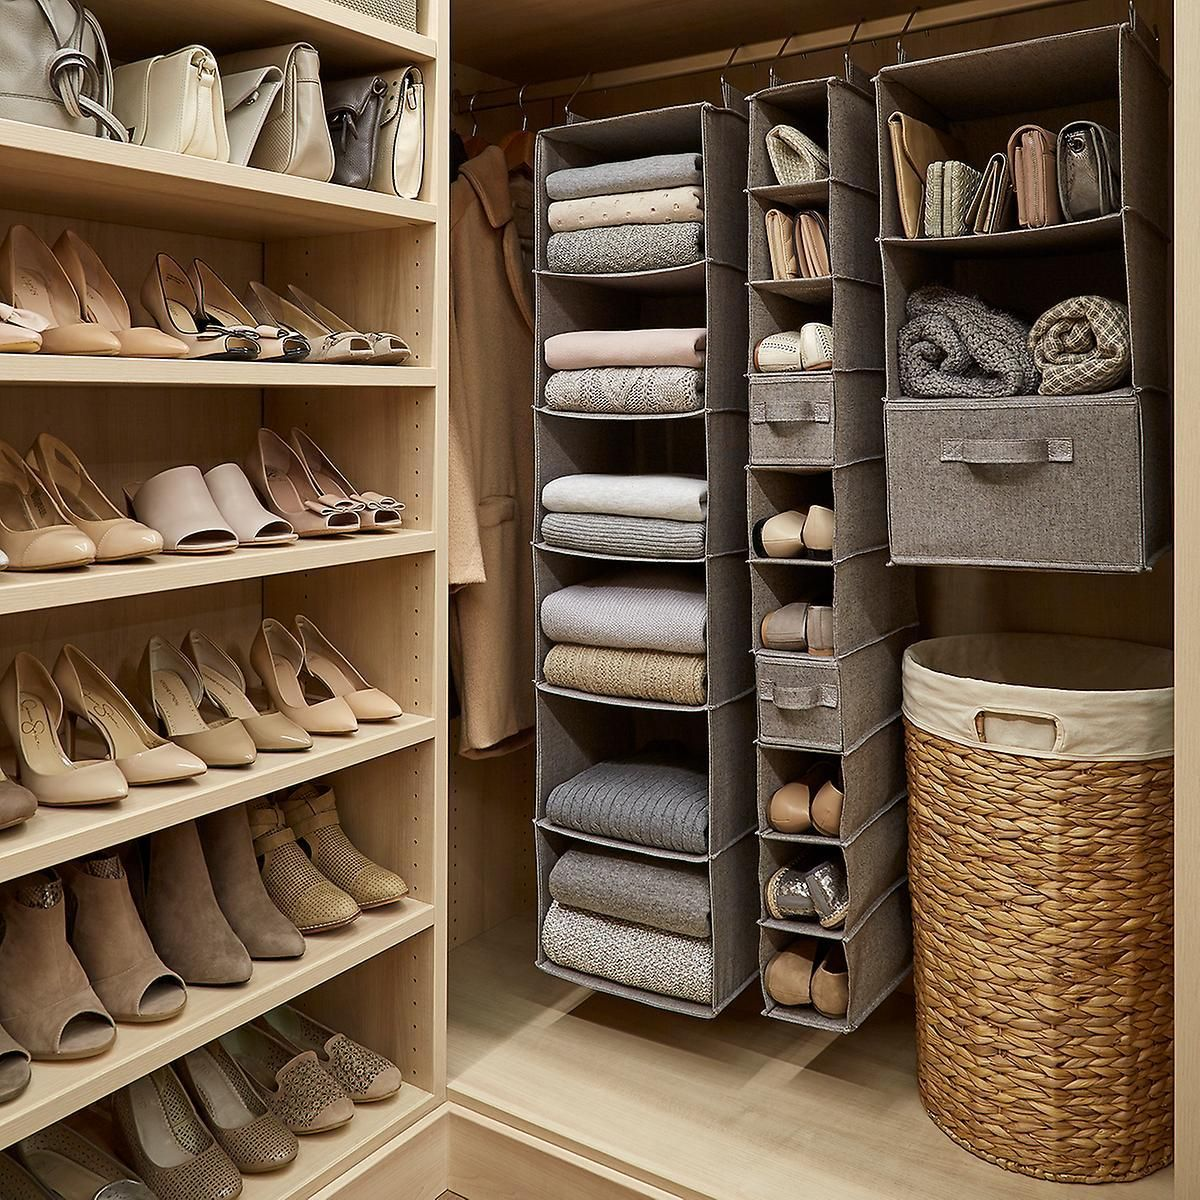 Hanging Closet Organizers Are A Great Way To Make The Most Of The Vertical Space In You Apartment Closet Organization Shoe Organization Closet Closet Apartment